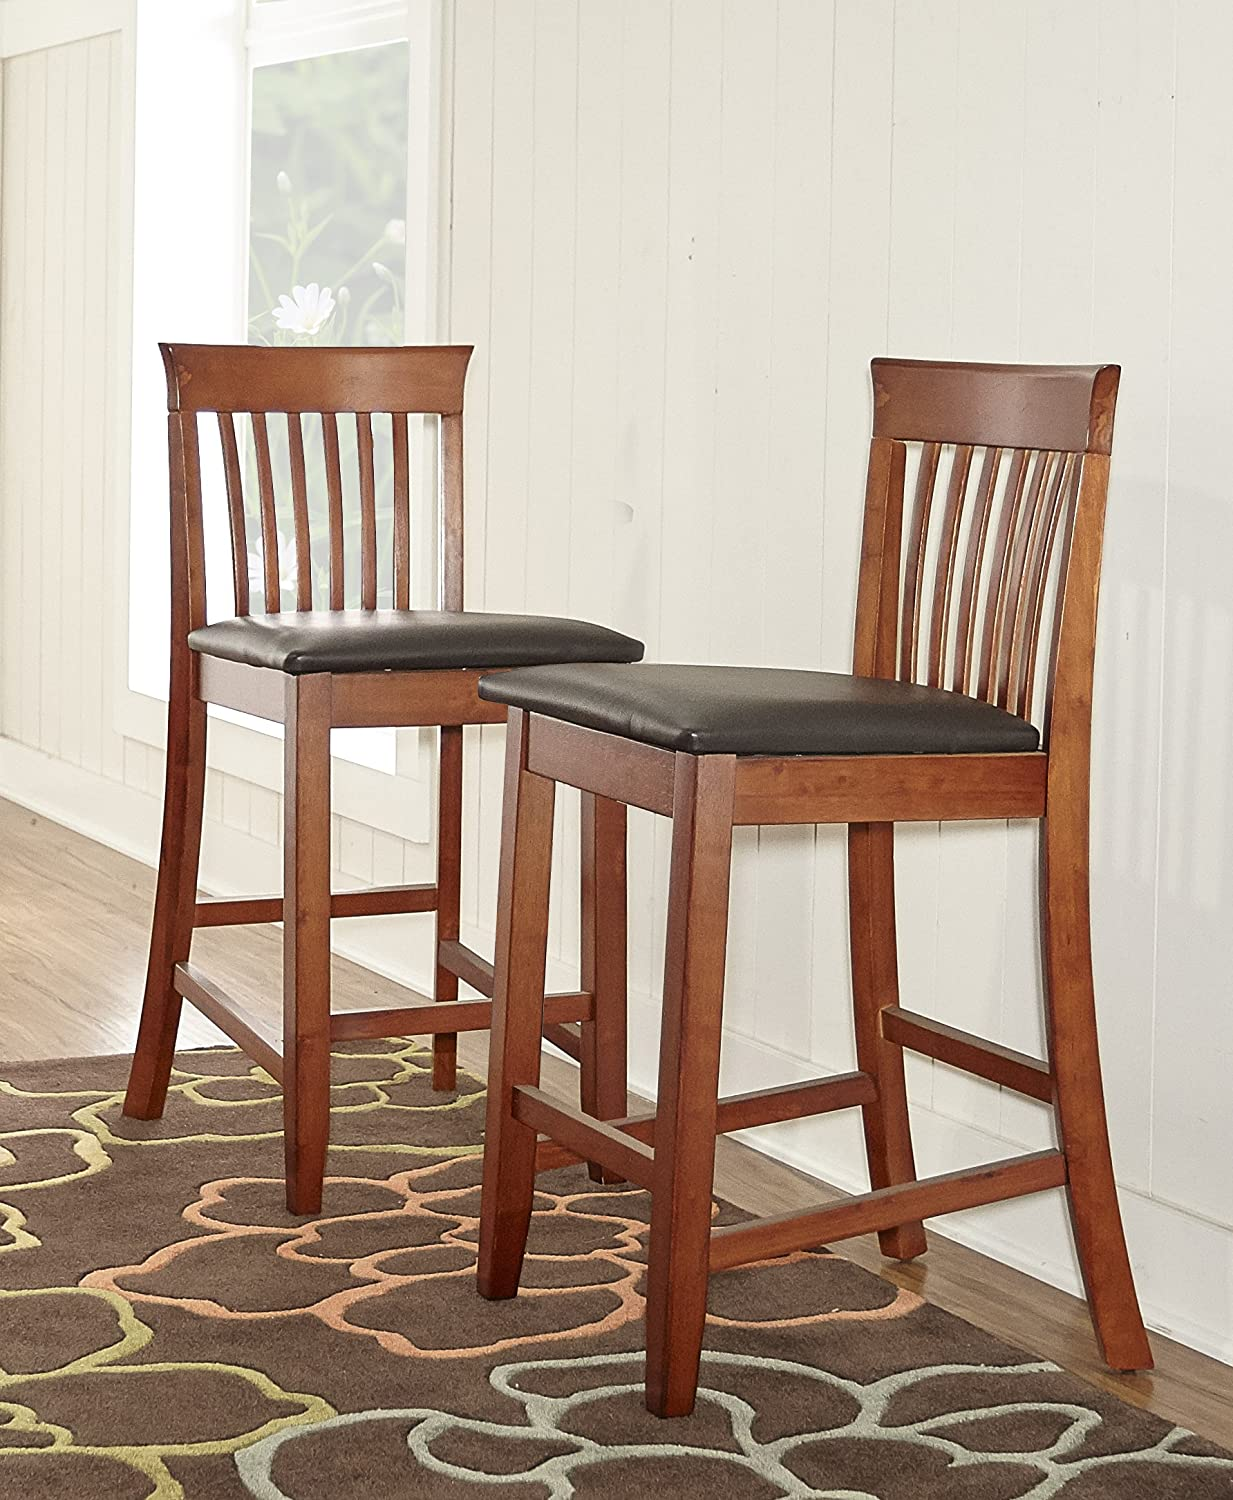 Craftsman Stool And Table Set Amazoncom Triena Collection Craftsman Counter Stool 24 Inch